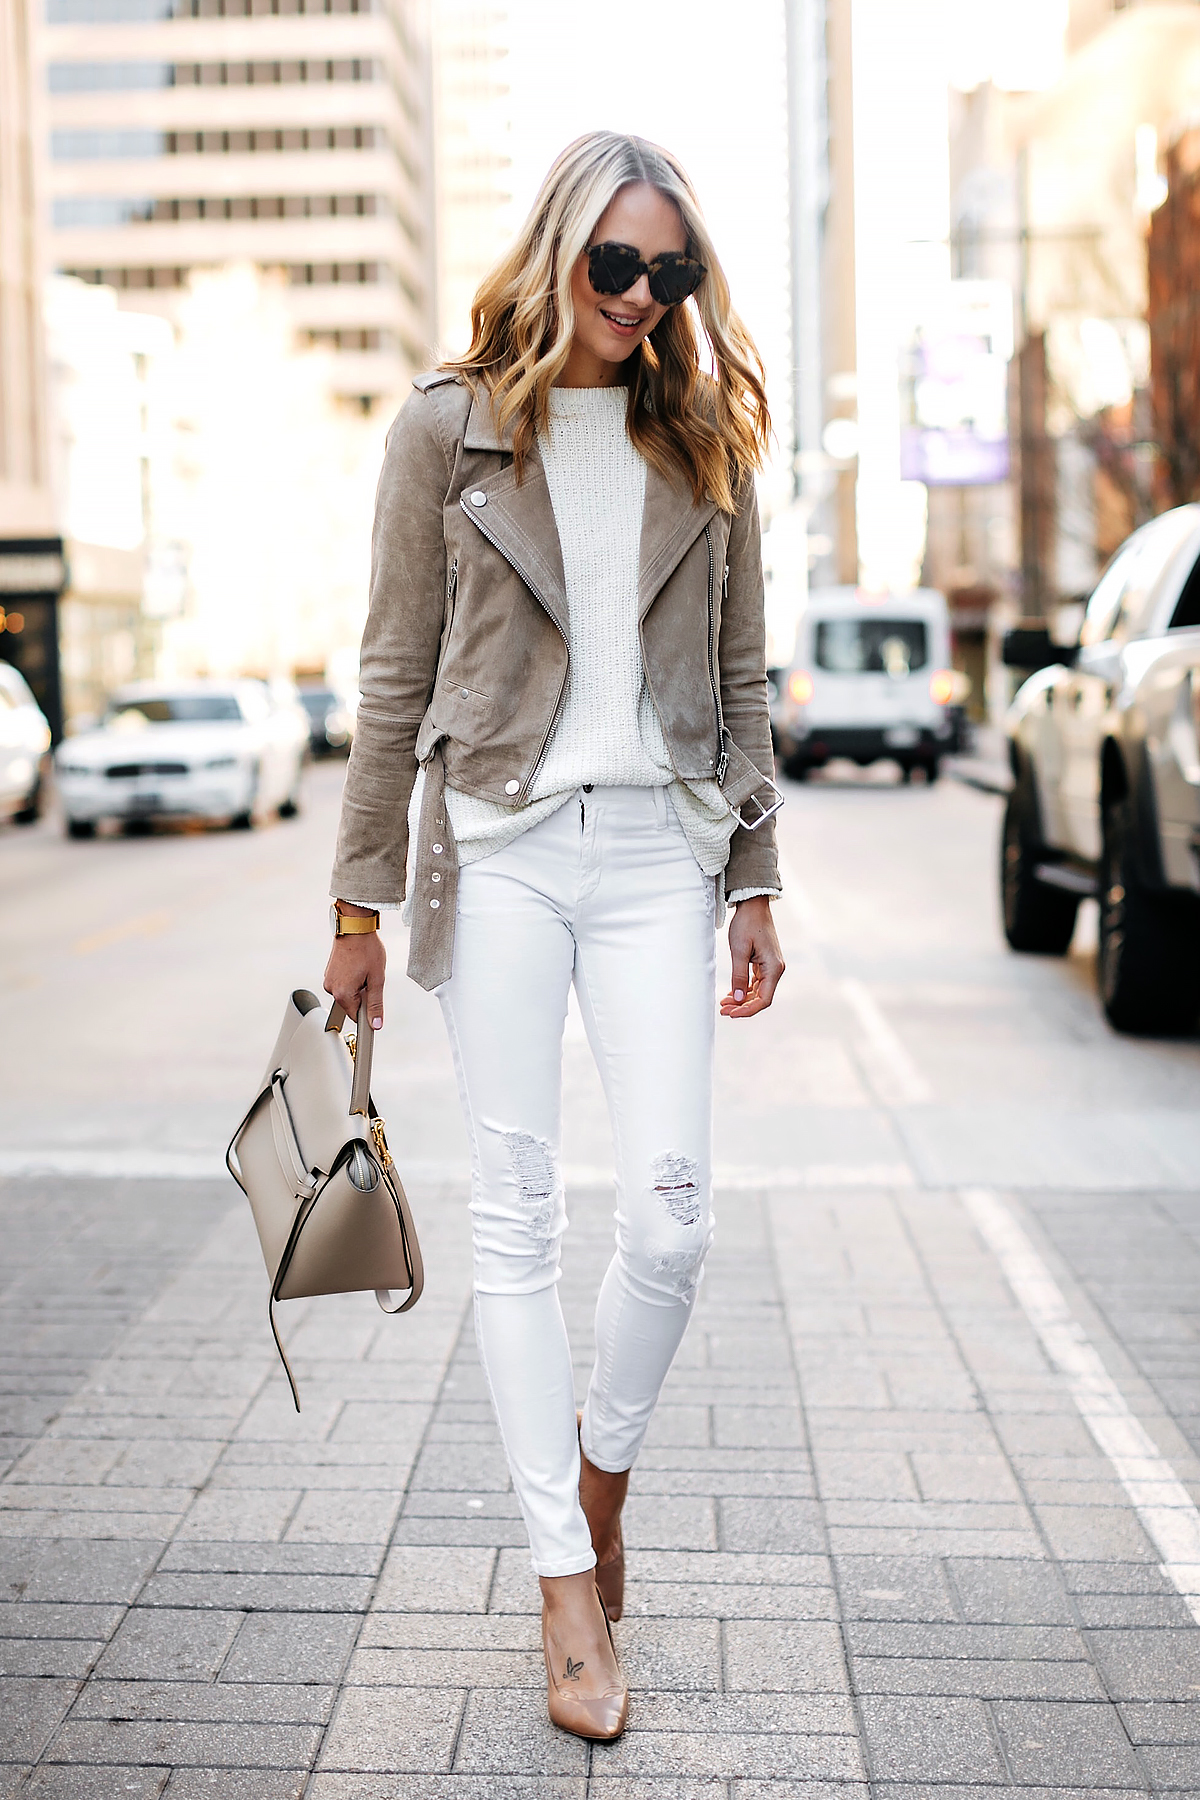 Fashion Jackson Wearing Blanknyc Tan Suede Moto Jacket White Sweater White Ripped Skinny Jeans Nude Pumps Celine Mini Belt Bag